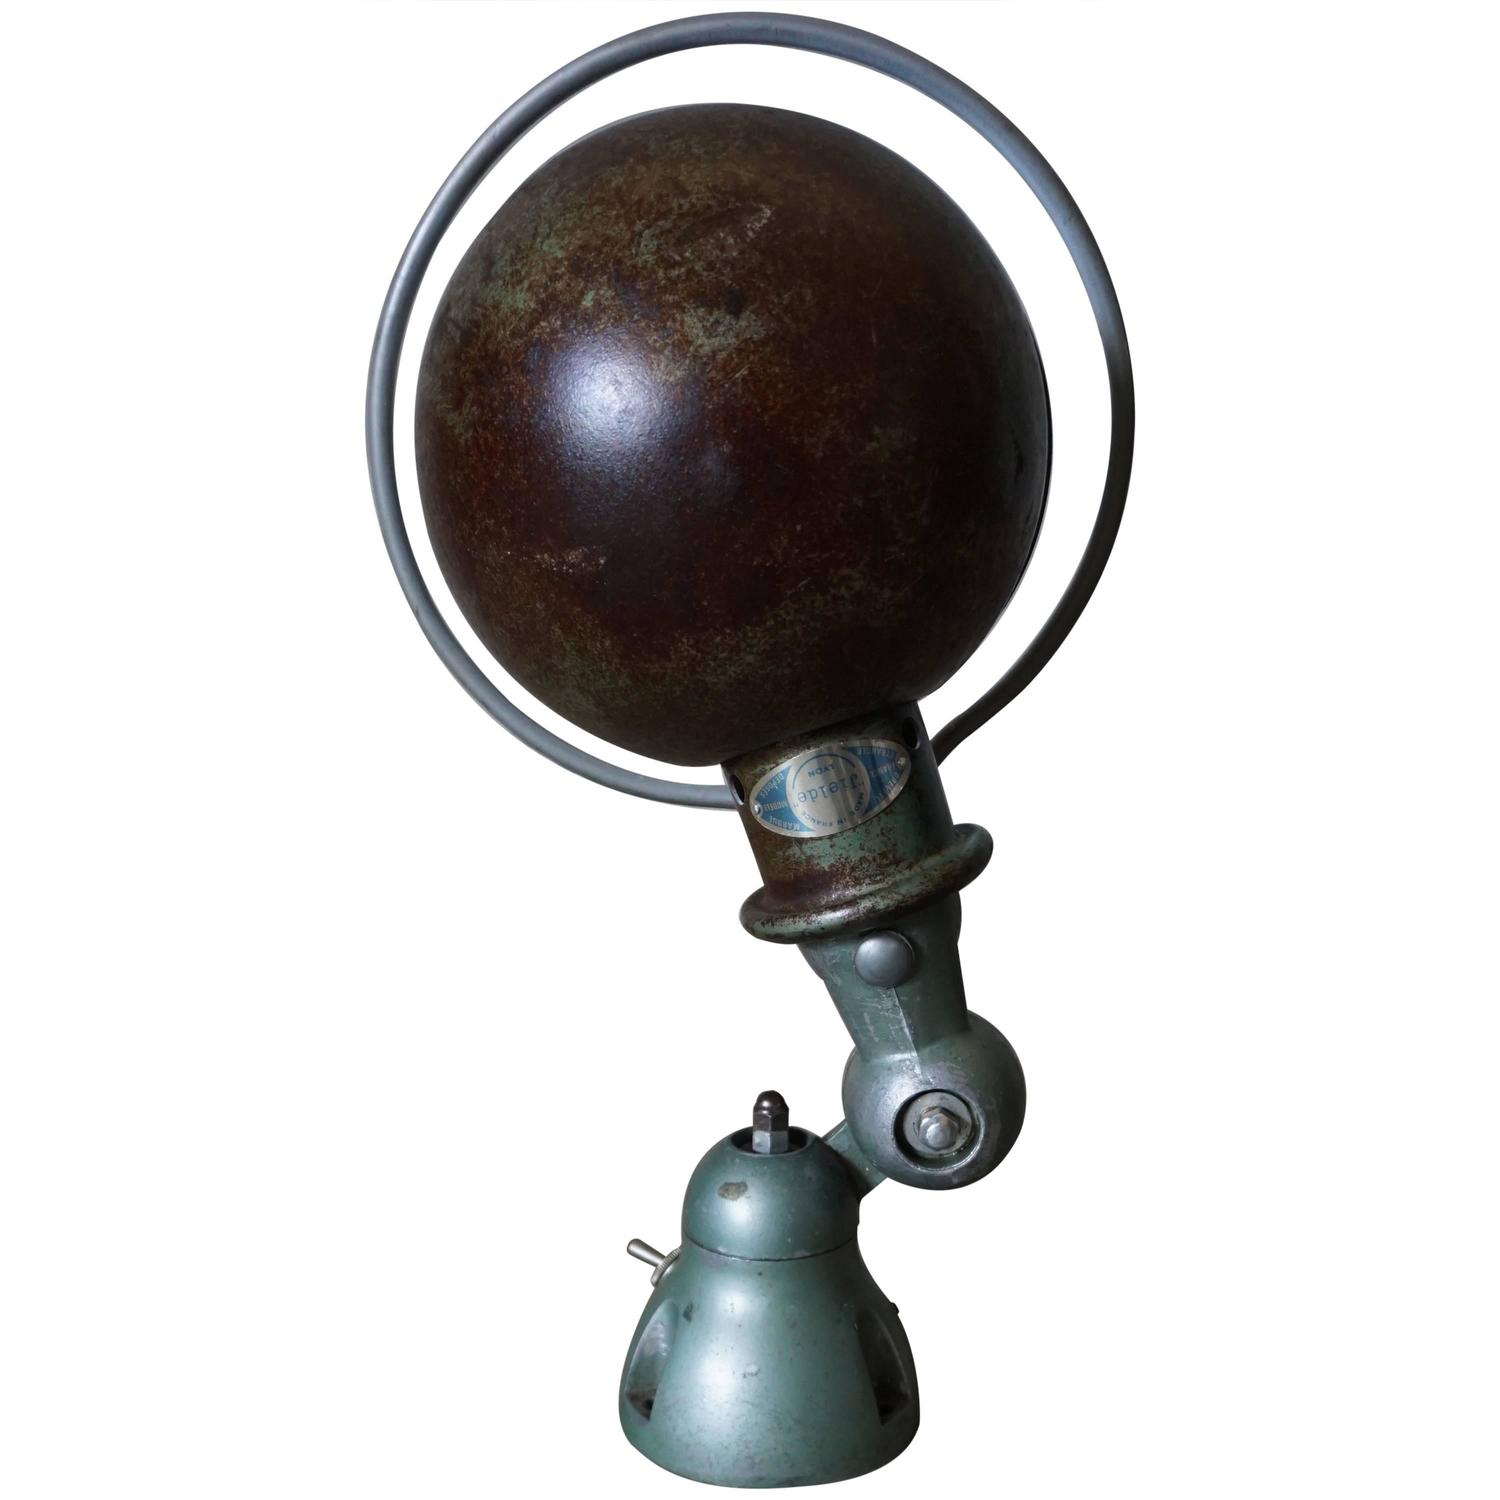 French Industrial Wall Lights : French Industrial Wall Light by Jean-Louis Domecq for Jielde, 1950s at 1stdibs